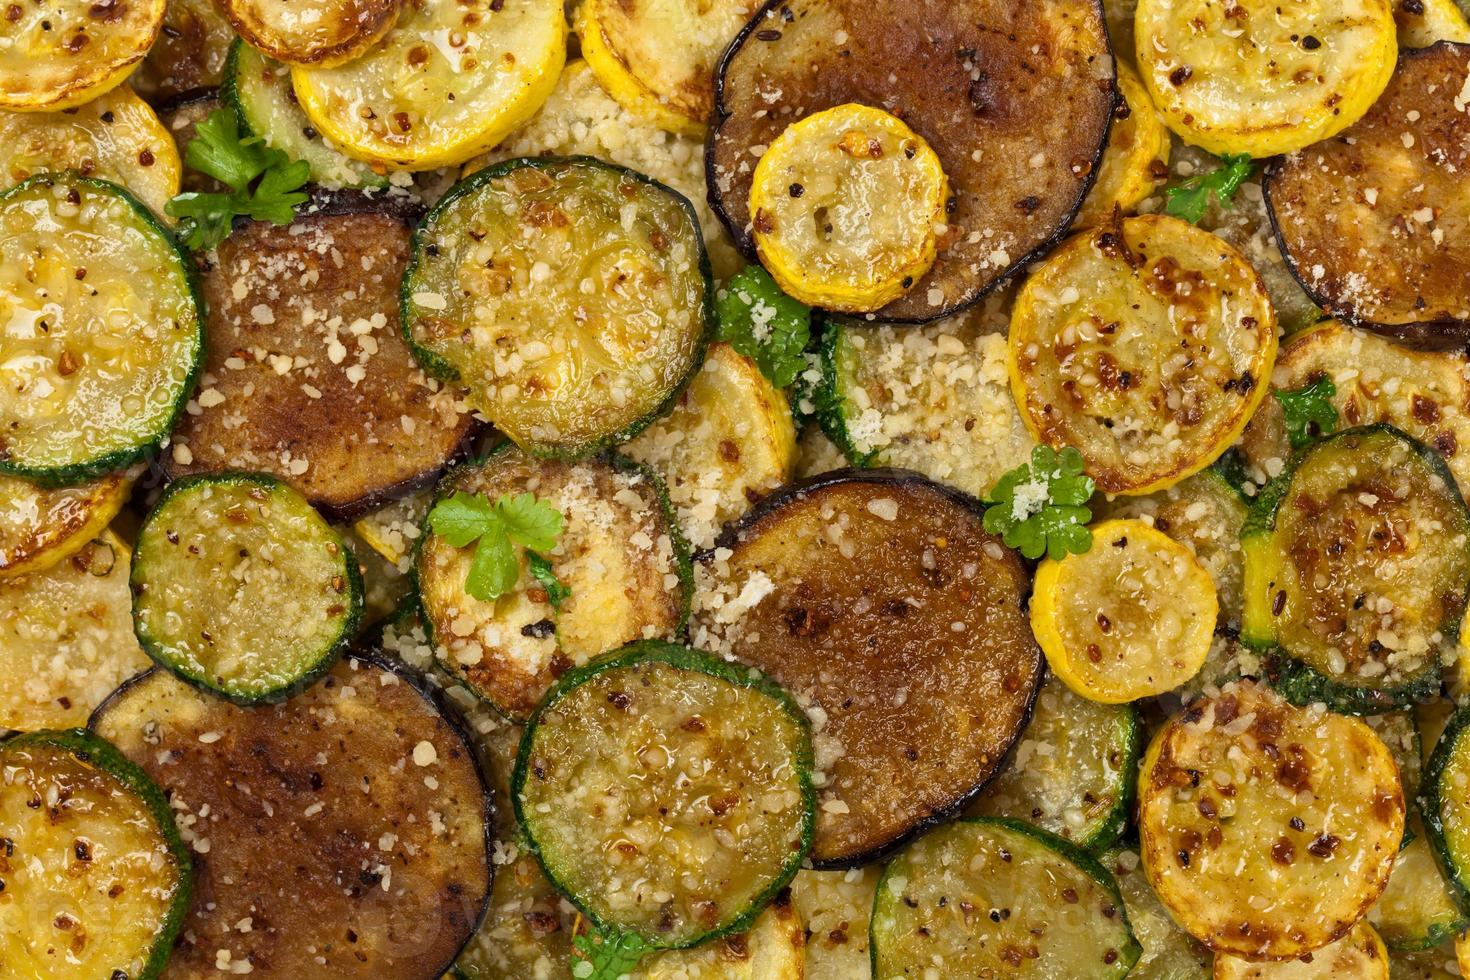 Sauteed Vegetables With Parmesan Cheese photo